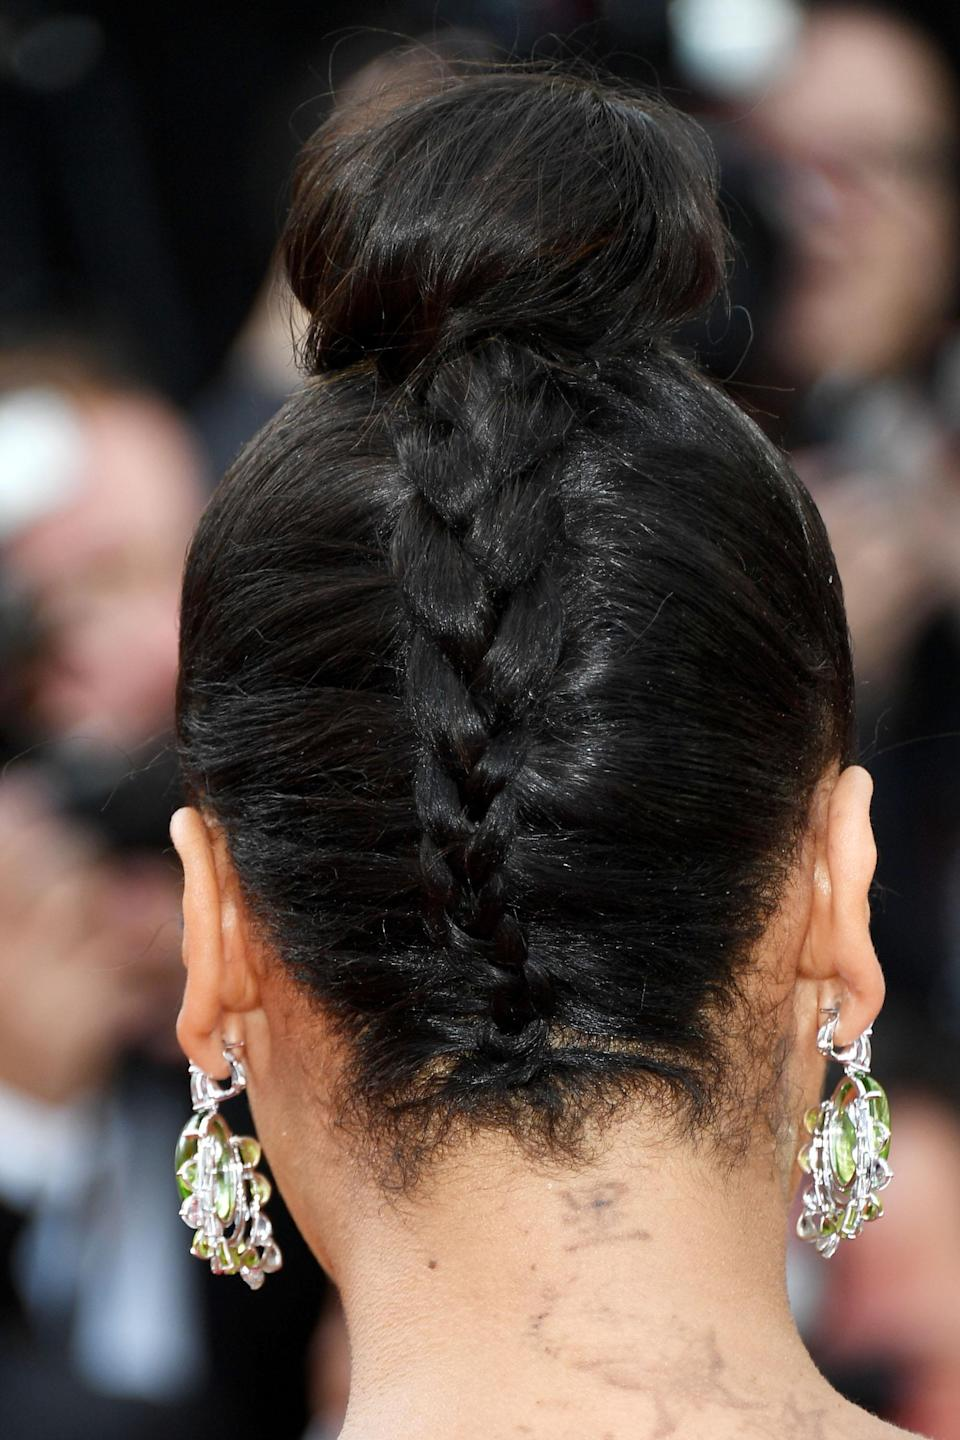 "<h3>La La Anthony</h3> <br>The reverse braid is tricky, but if you have the dexterity to begin your three-strand style from the nape of your neck, the spiral makes for the prettiest topknot.<span class=""copyright"">Photo: Venturelli/WireImage/Getty Images. </span><br>"